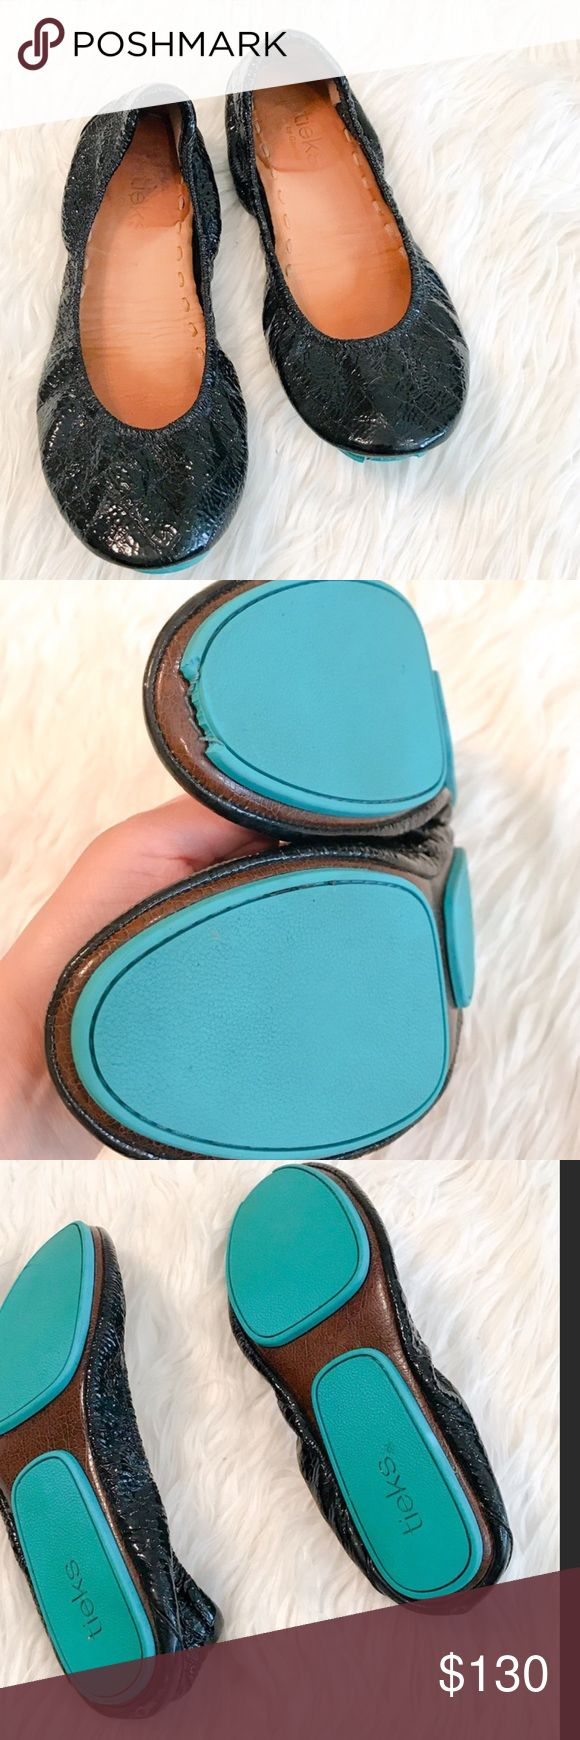 Tieks size 7 Re posh. Selling for the exact same price I paid for them 2 weeks ago. I have not worn them (original posher did) due to them running smaller than original Tieks. Will trade for other Tieks only. price is firm since I'm already loosing money due to posh fees.. All sales finial. View all photos of wear and defects. No box, bag or flower. Tieks Shoes